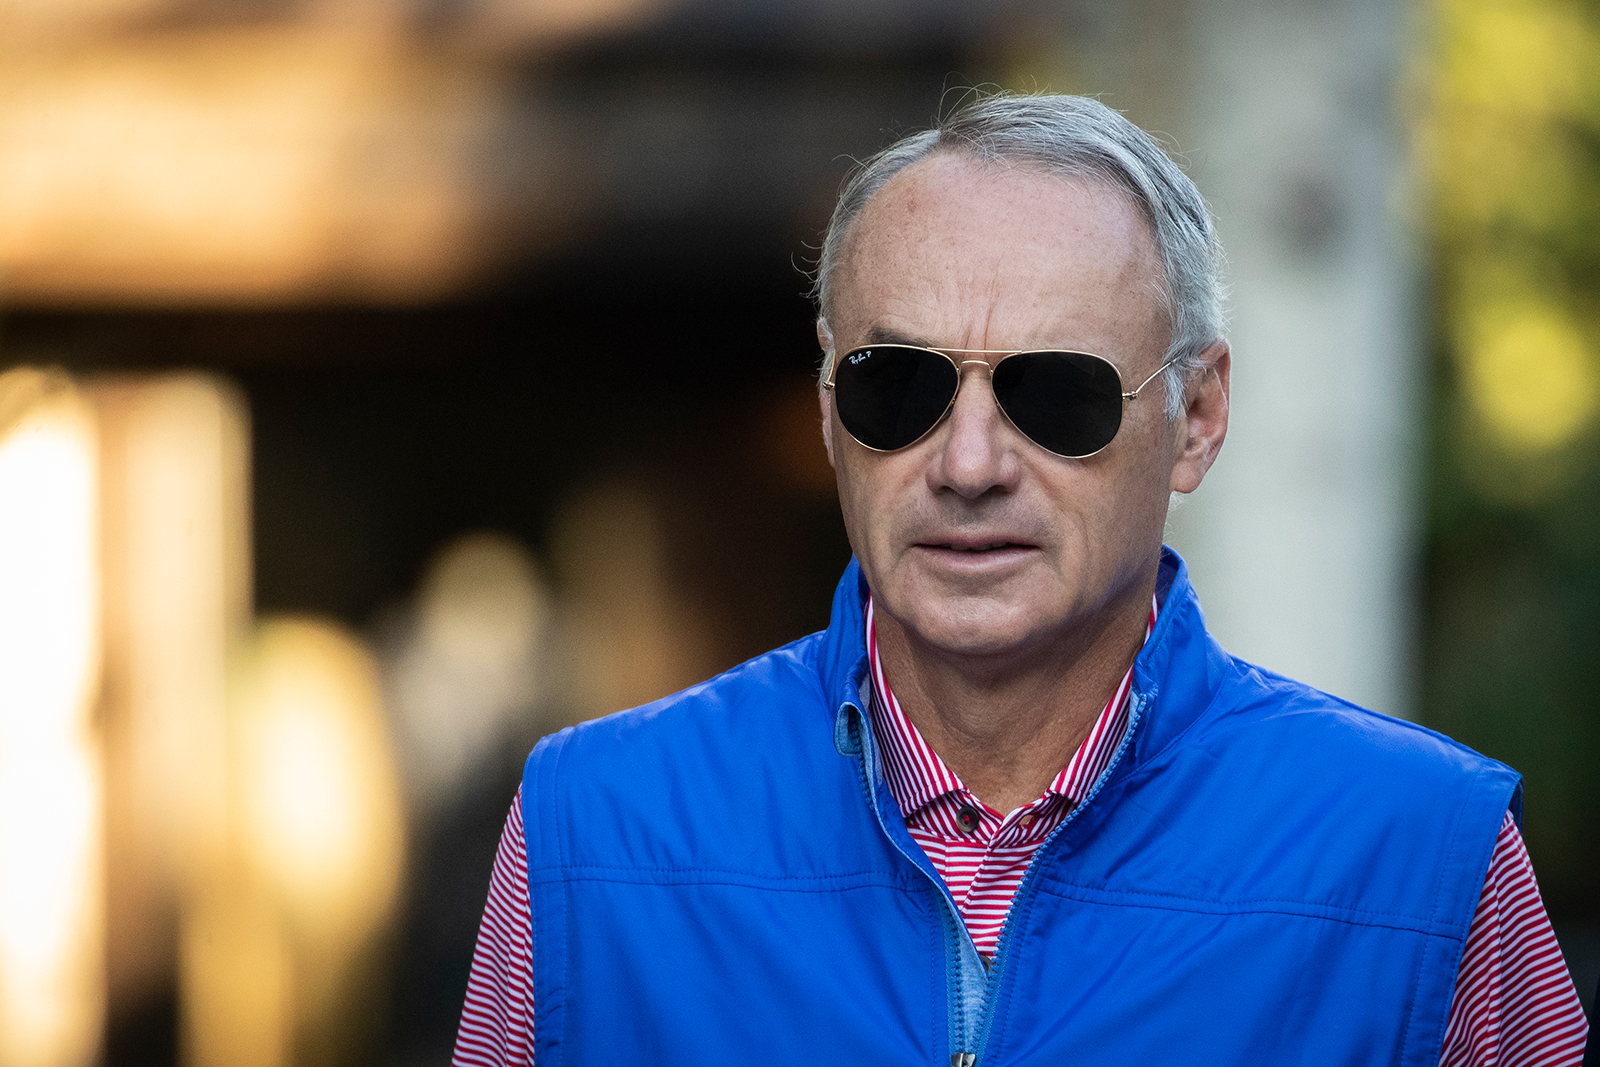 In this July 12, 2019 photo, Rob Manfred, commissioner of Major League Baseball, attends the annual Allen & Company Sun Valley Conference in Sun Valley, Idaho.